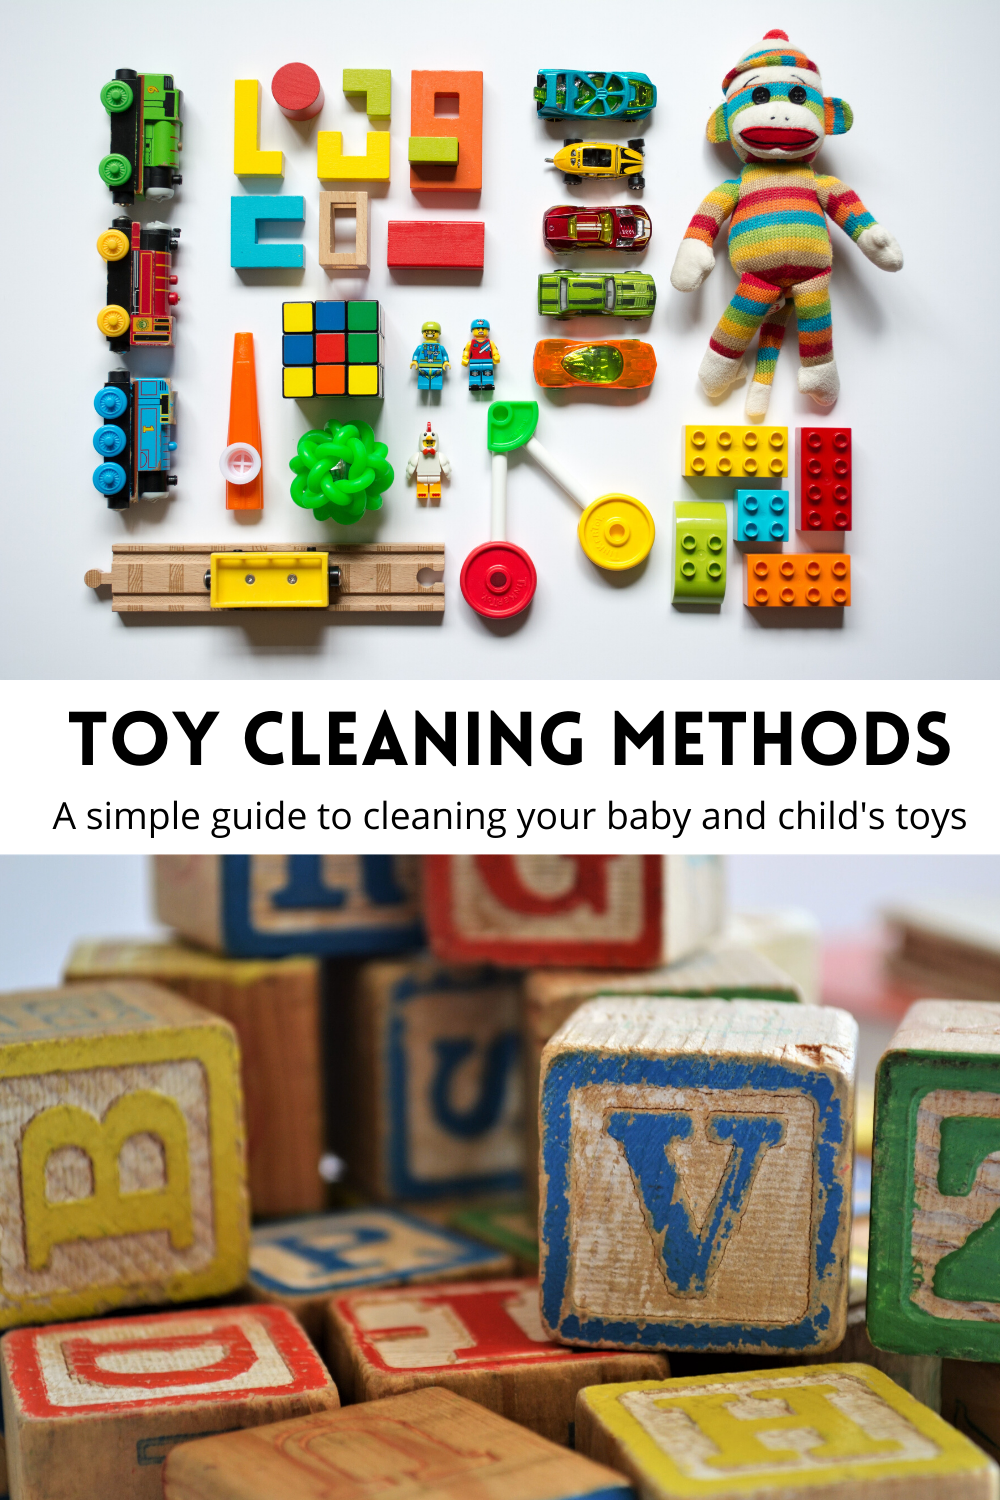 Toy Cleaning Methods